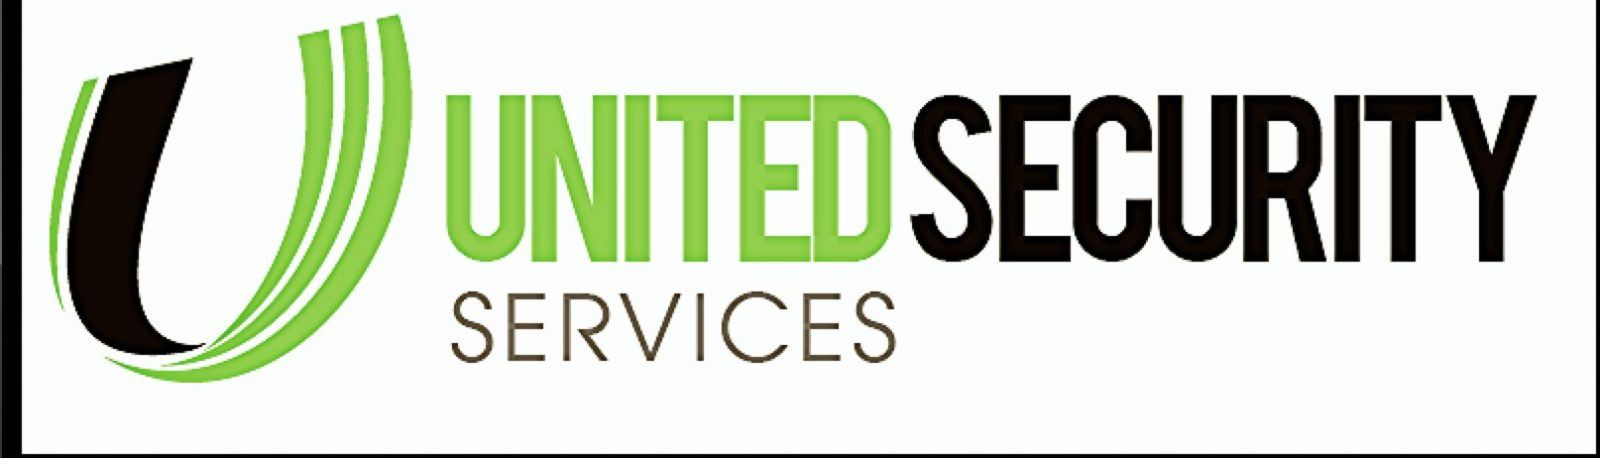 United Security Services is seeking Unarmed Security Officers in the Boca Raton and Fort Lauderdale areas.